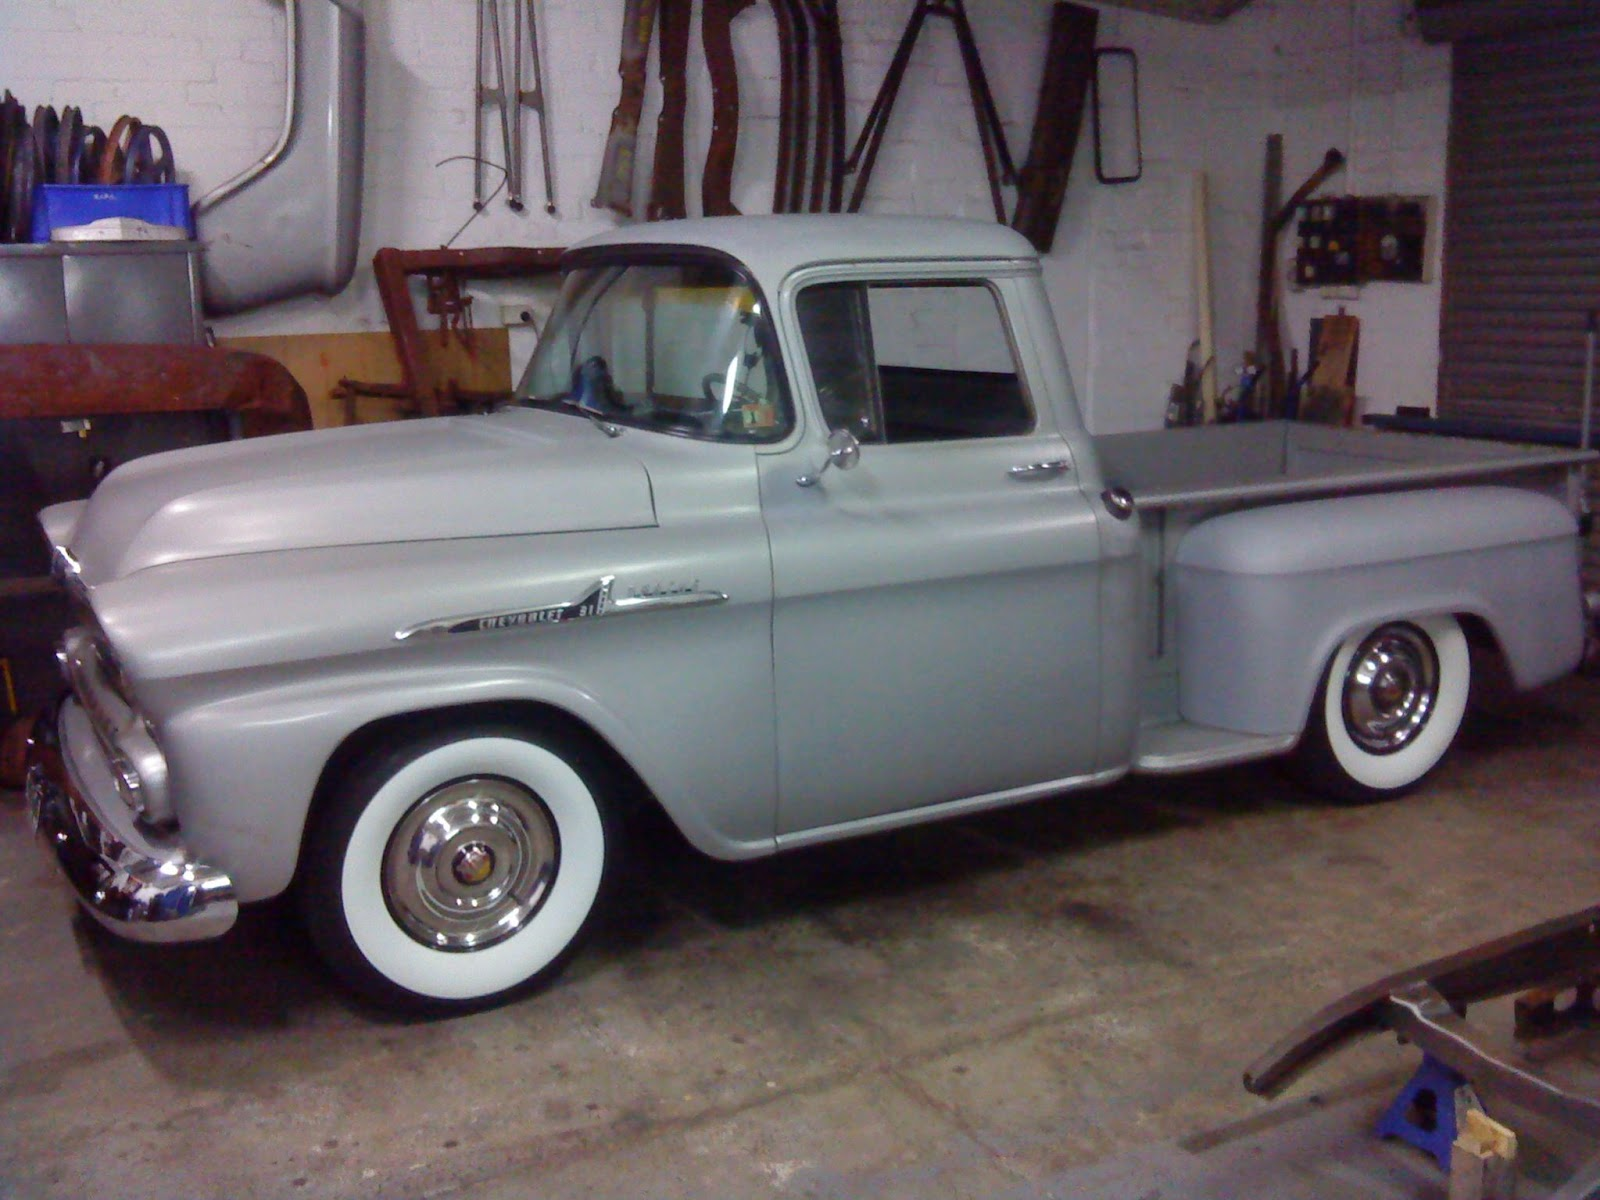 55 to 57 chevy pickup trucks for sale autos post. Black Bedroom Furniture Sets. Home Design Ideas